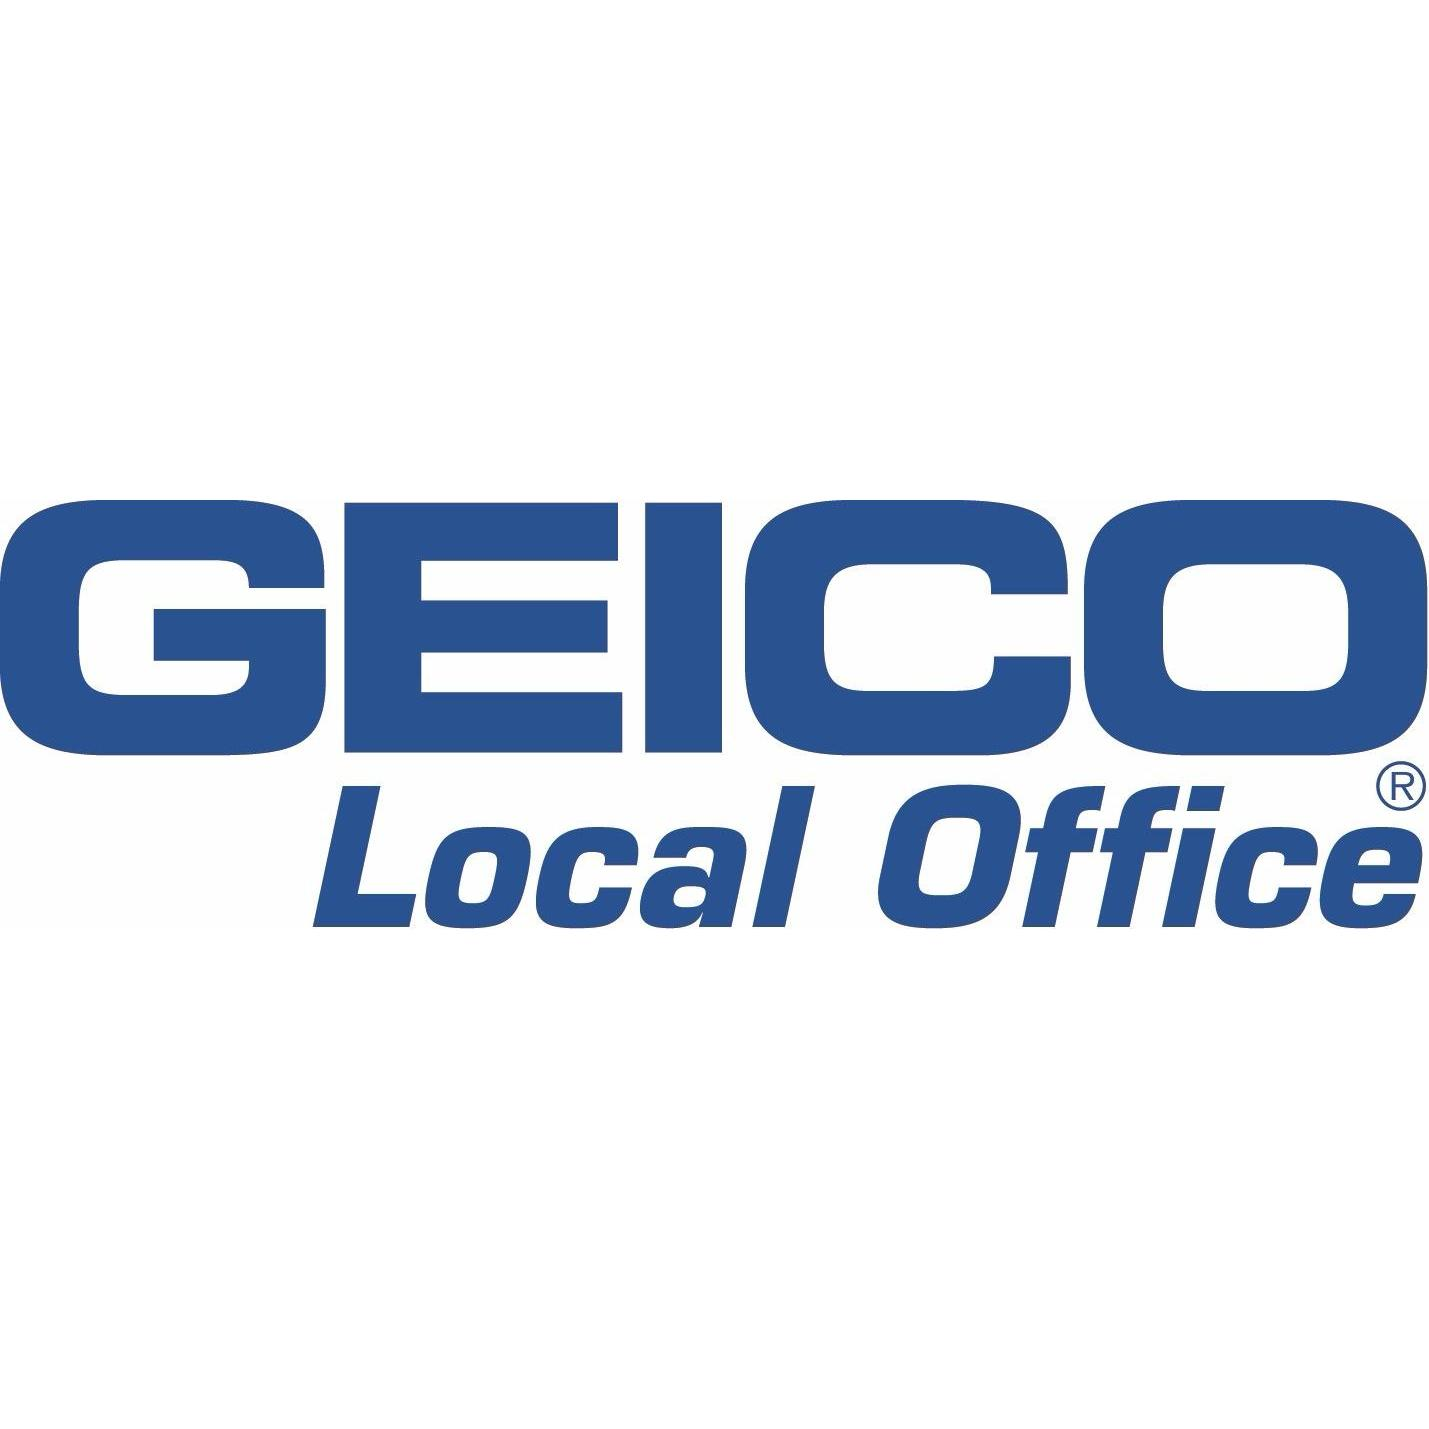 GEICO Insurance Agent - Hackensack, NJ 07601 - (201) 646-1660 | ShowMeLocal.com